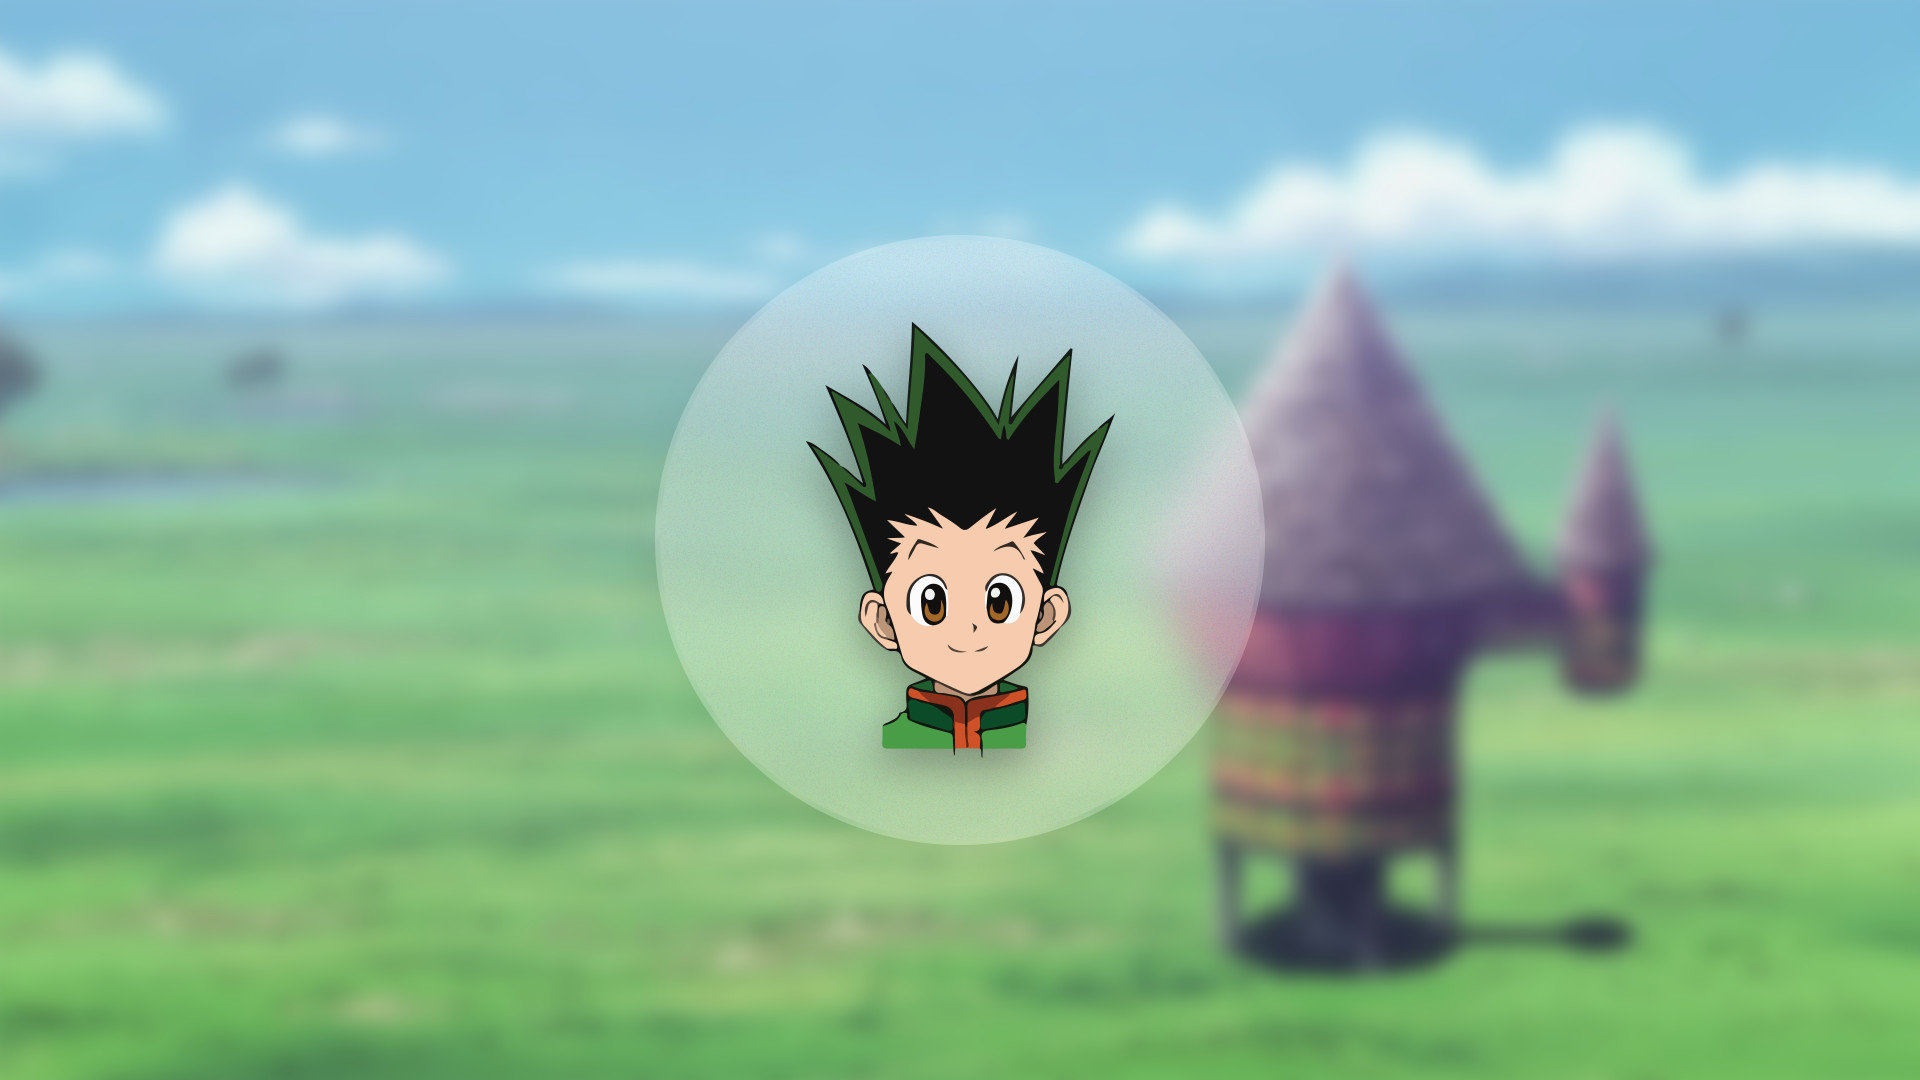 Free Gon Freecss high quality background ID:10907 for full hd PC